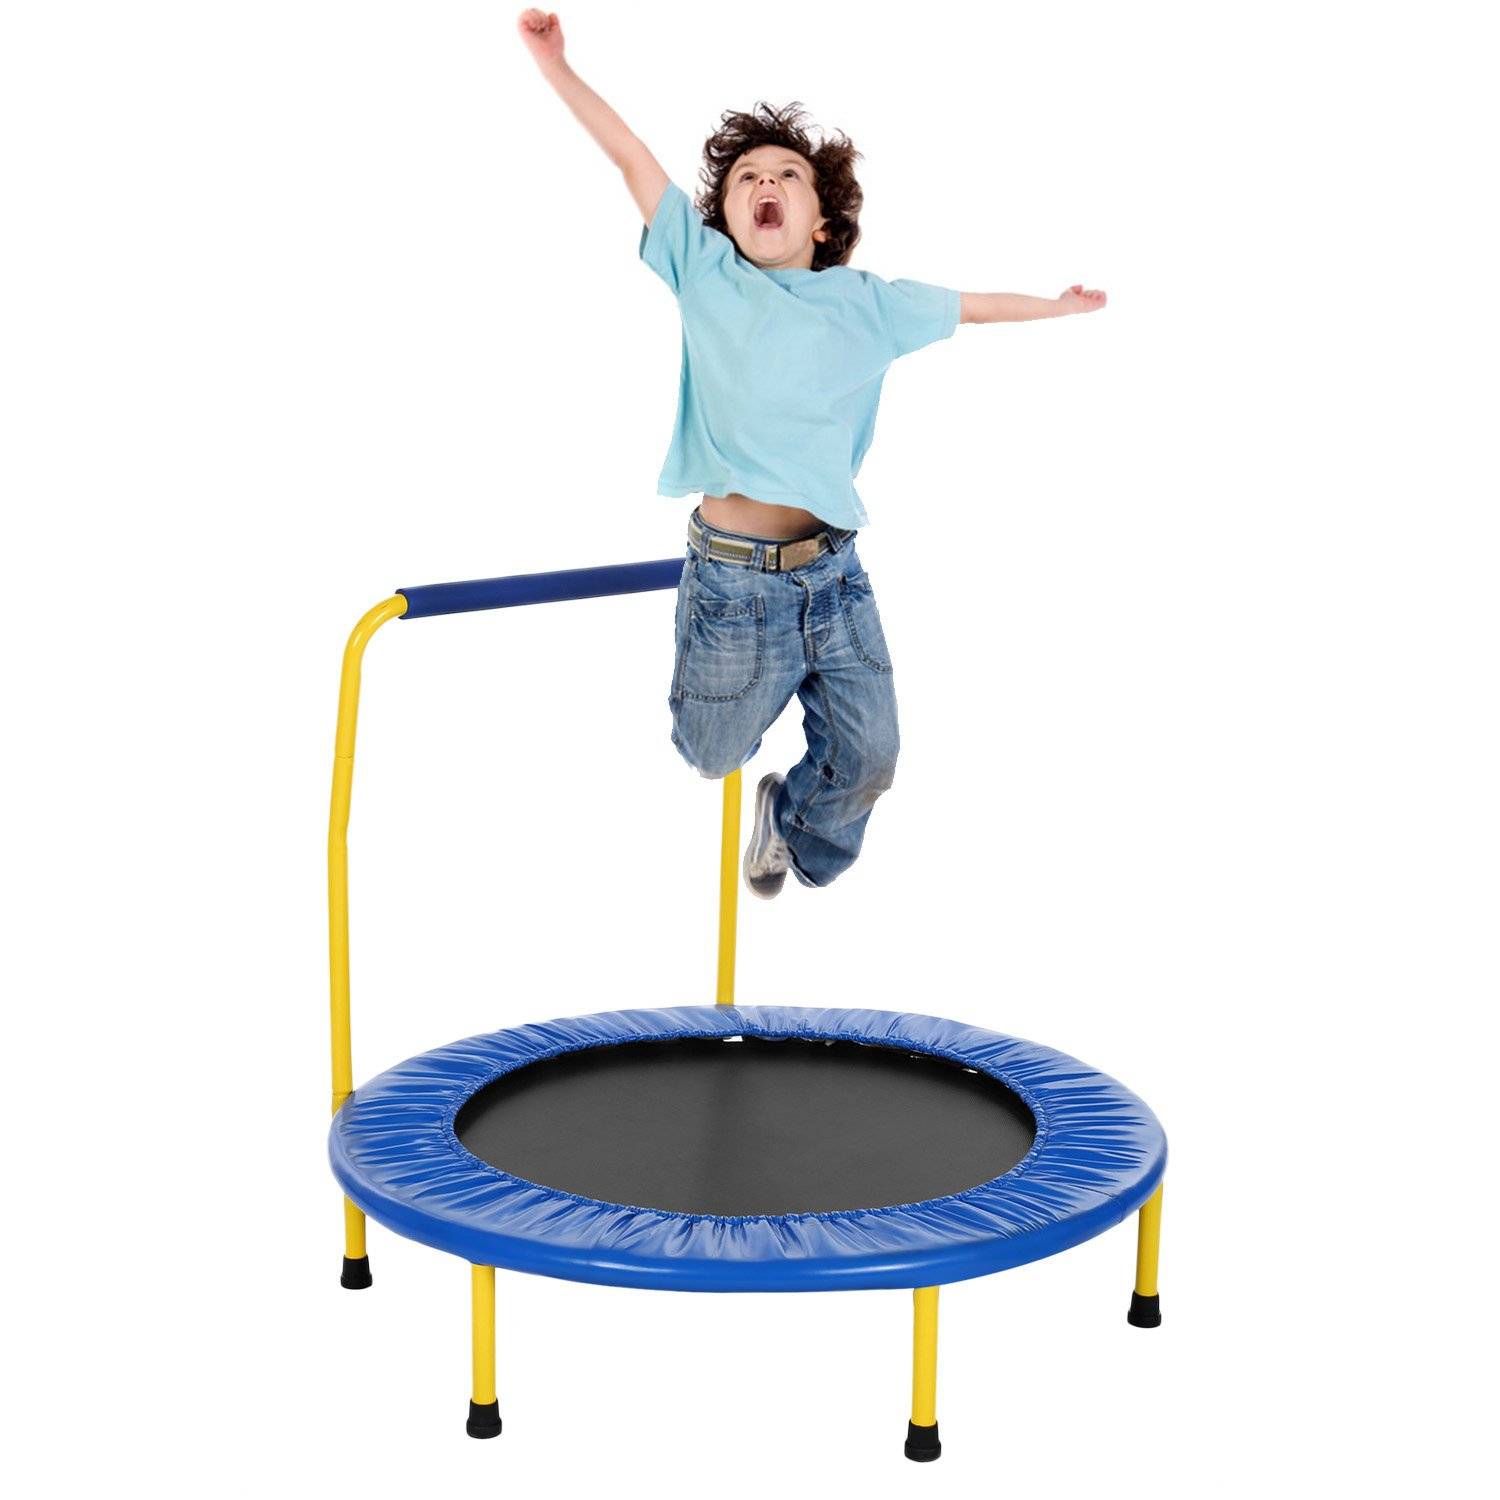 ANCHEER Kids Trampoline with Safely Handrail,36'' Outdoor Mini Toddler Rebounder Trampoline,Indoor Small Trampoline for Kids,Safe & Portable & Foldable & Durable for Kid Exercise & Play. (Blue) by ANCHEER